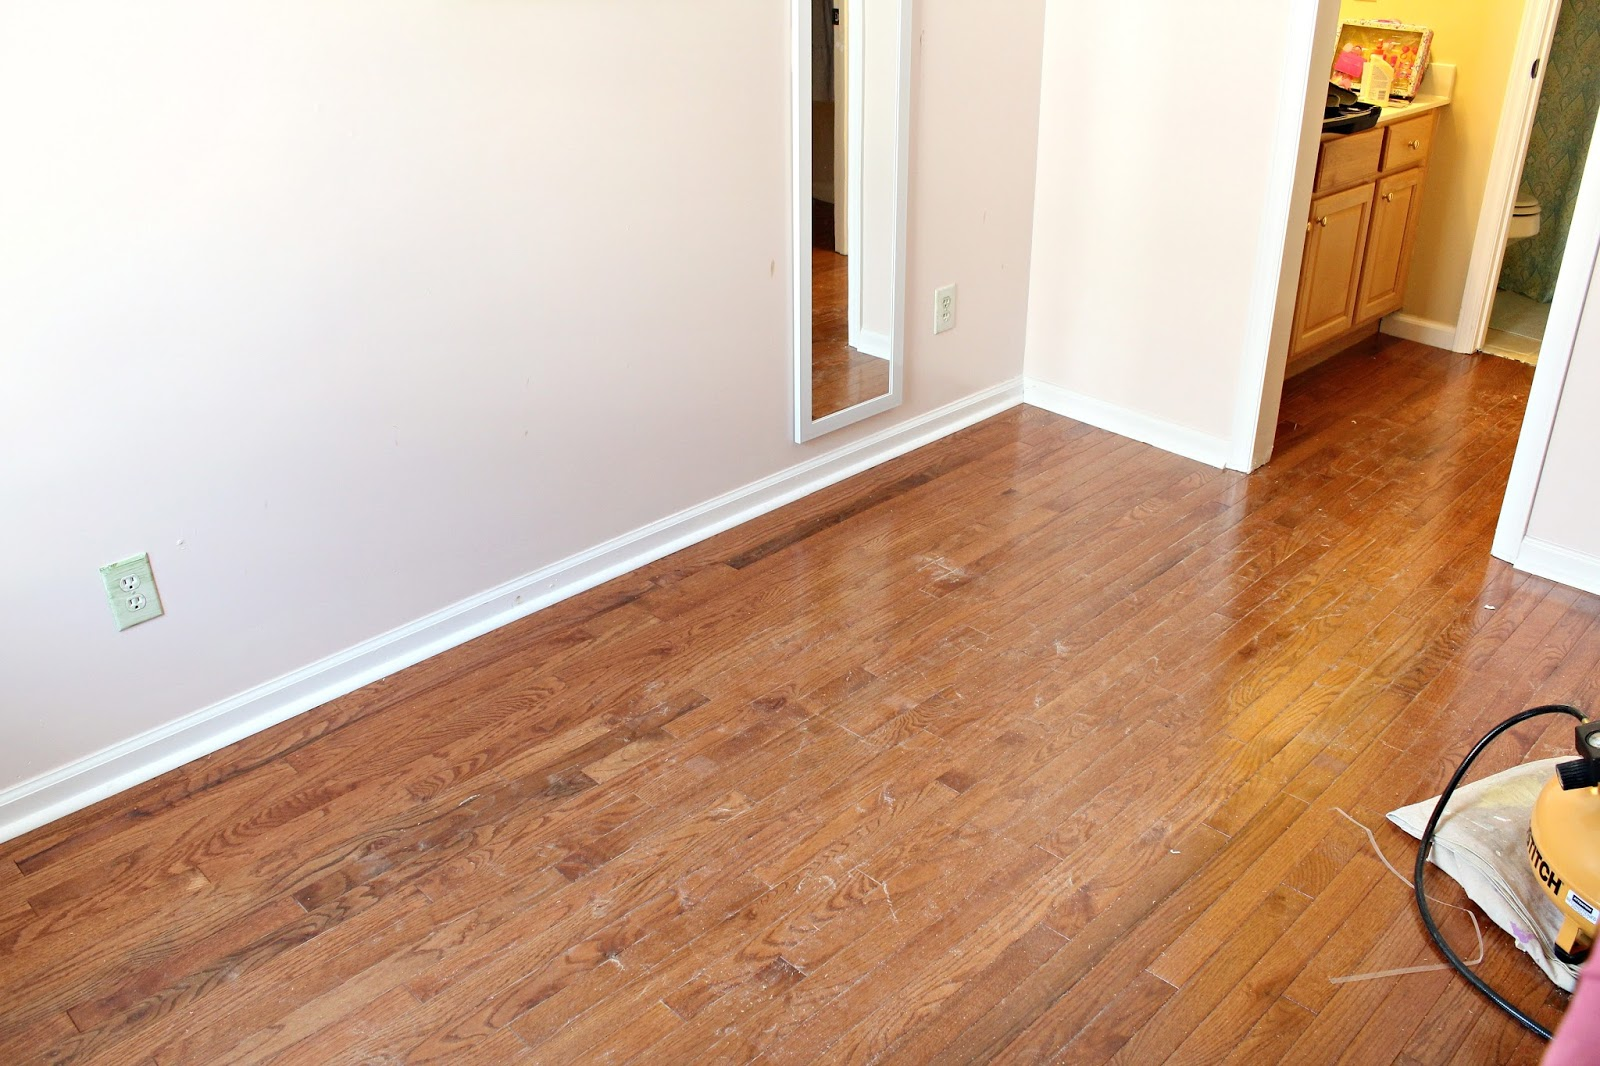 In A Few Days, I Will Post Some Reveal Photos, As Well As Share Our Flooring  Budget Breakdown!